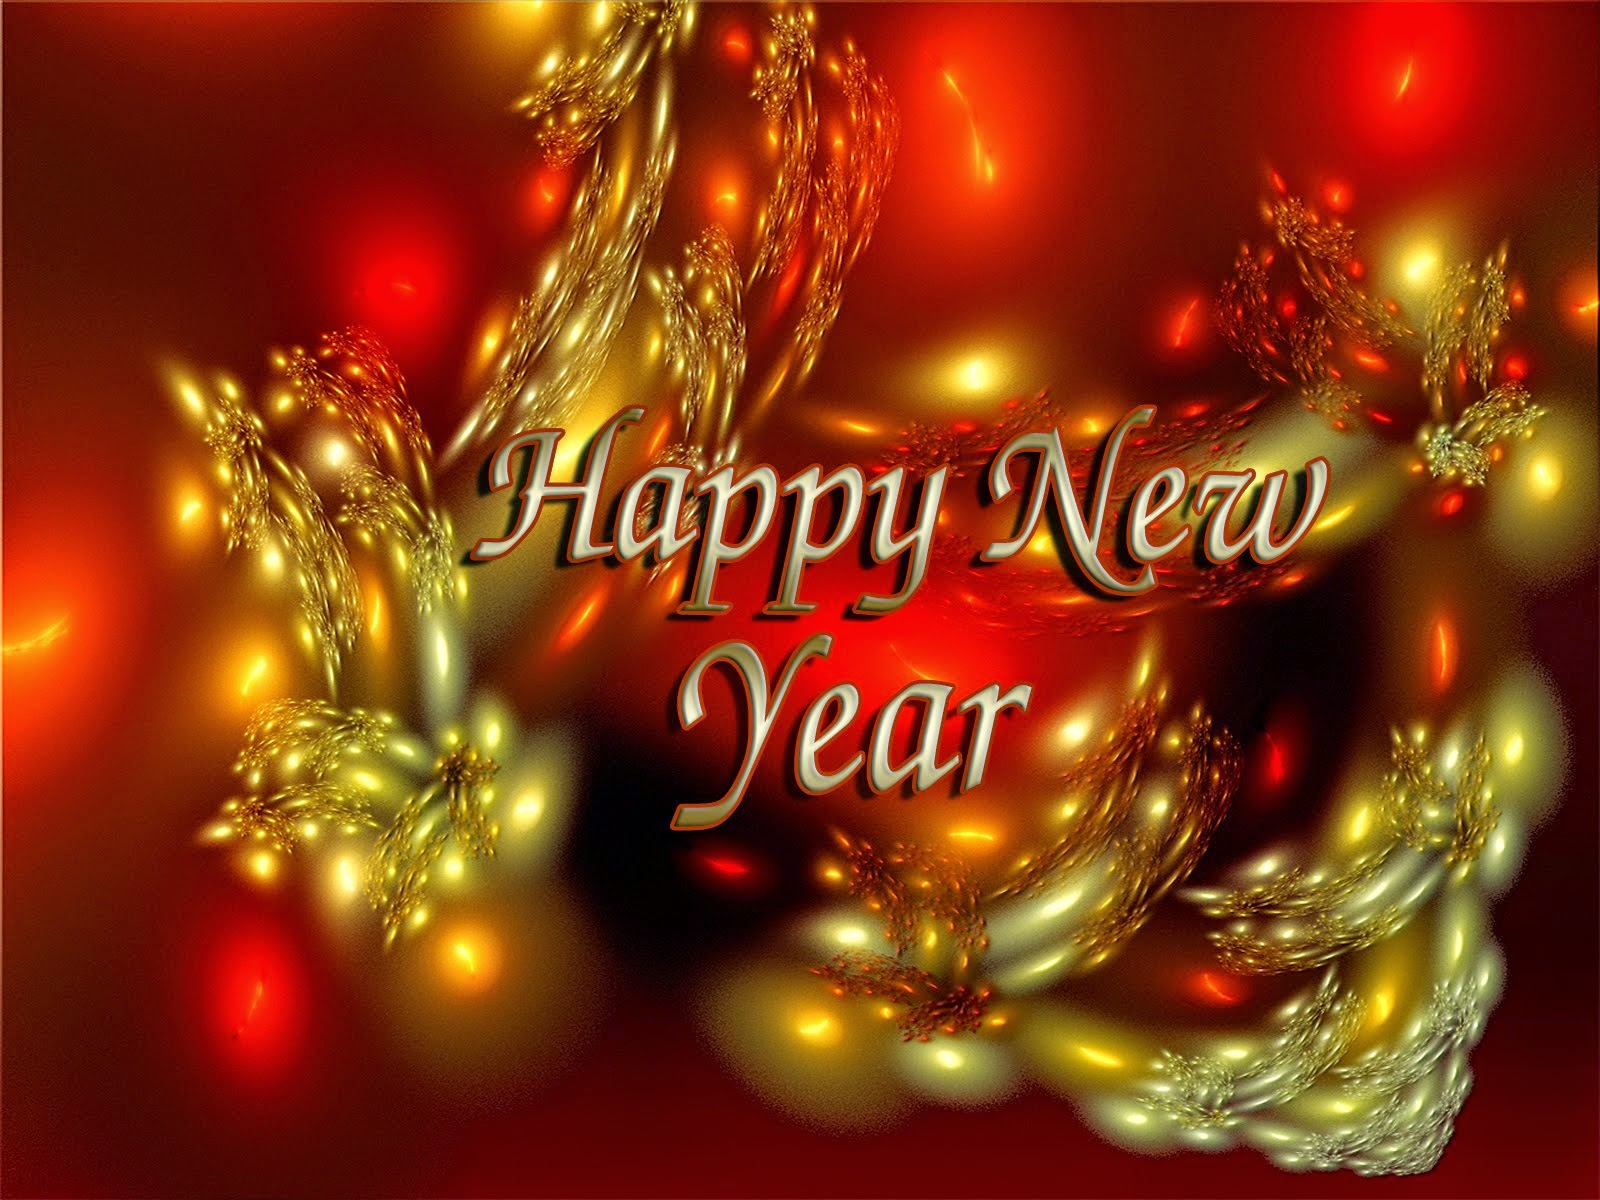 happy new year wishes greetings hd wallpaper